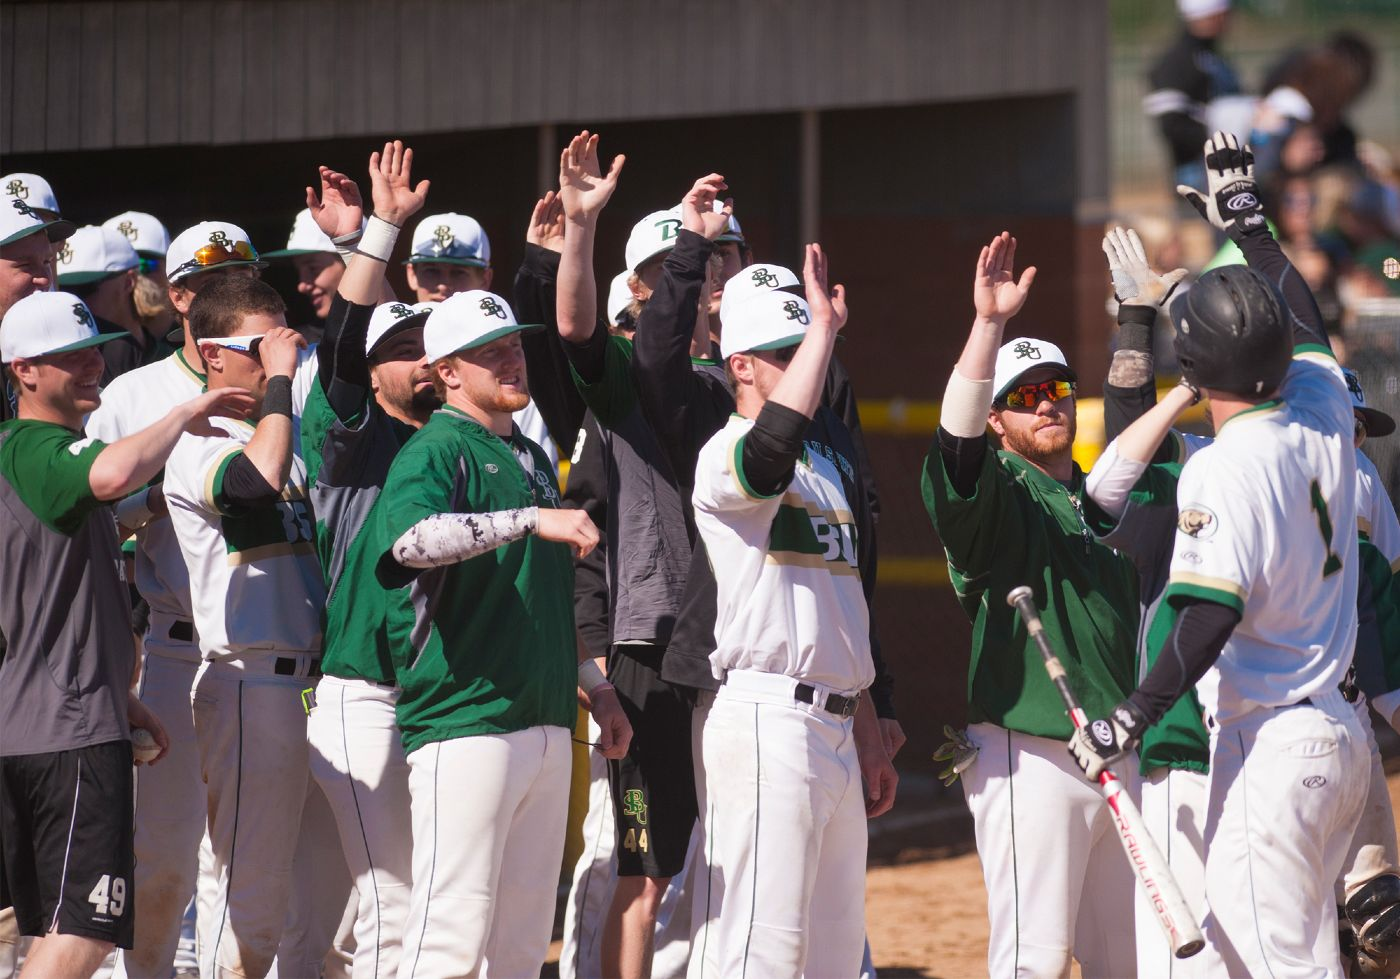 Beavers, Cougars move weekend series up one day